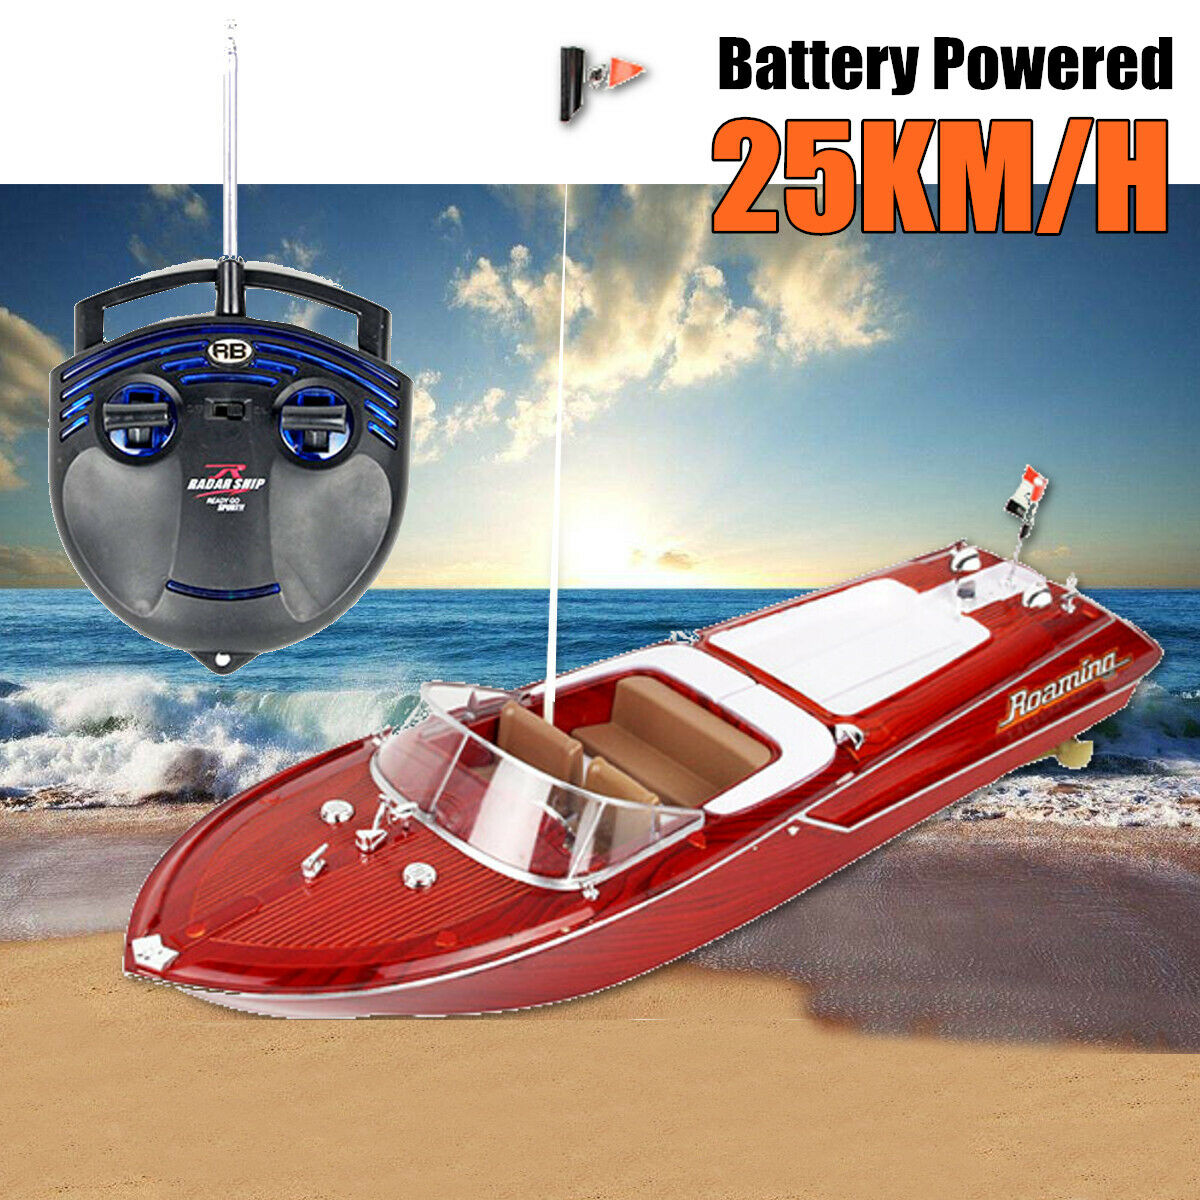 Lyxry RC Electric Yacht Style Ship High Speed Racing Remote Control Boat röd